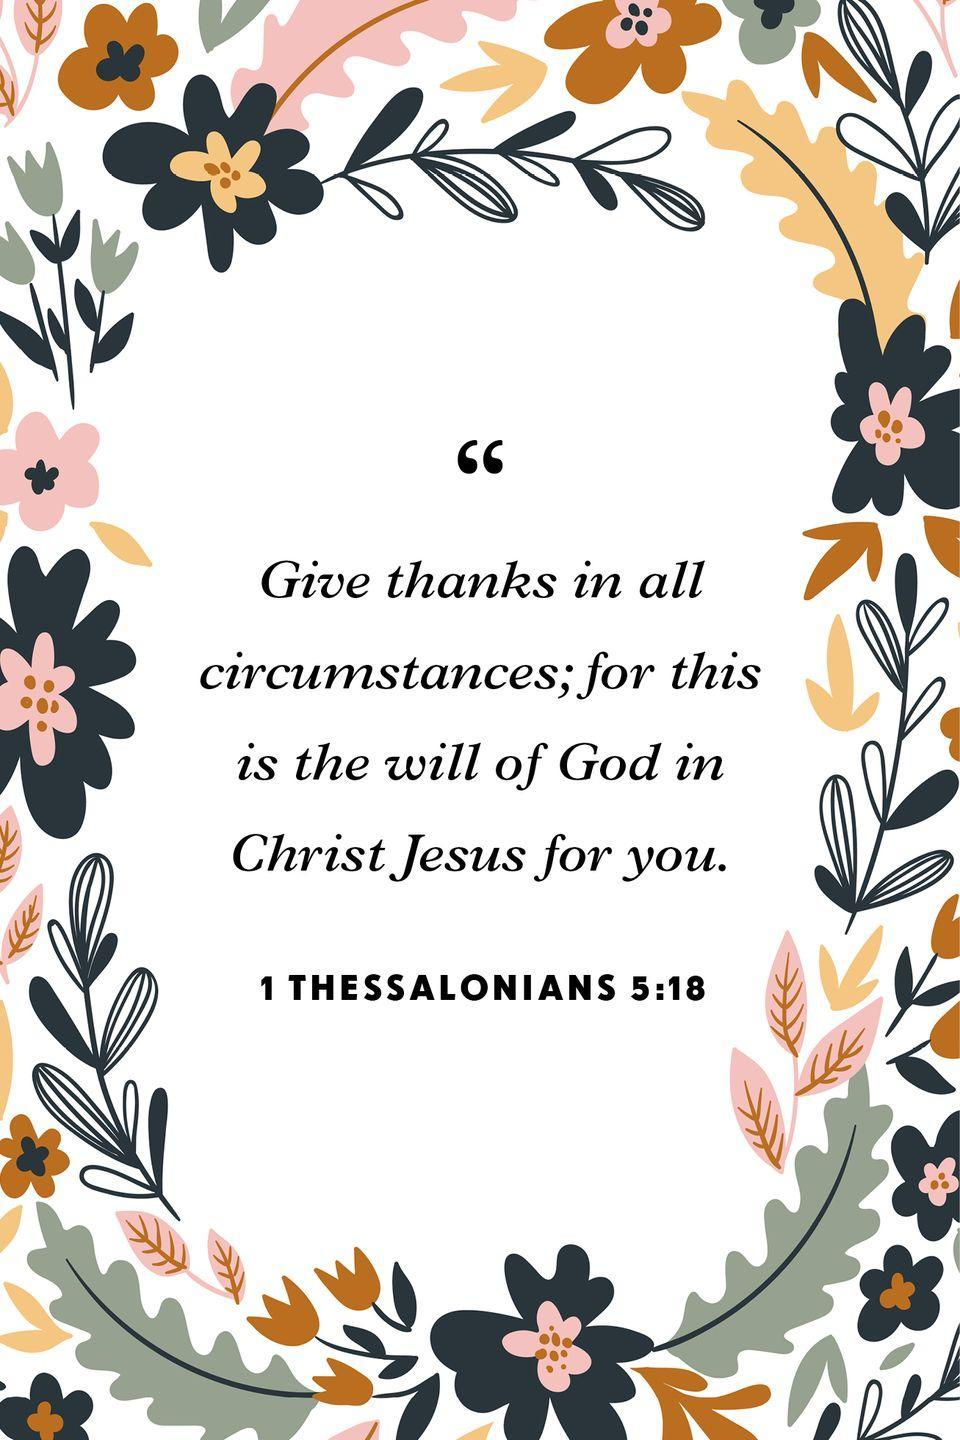 """<p>""""Give thanks in all circumstances; for this is the will of God in Christ Jesus for you.""""</p>"""